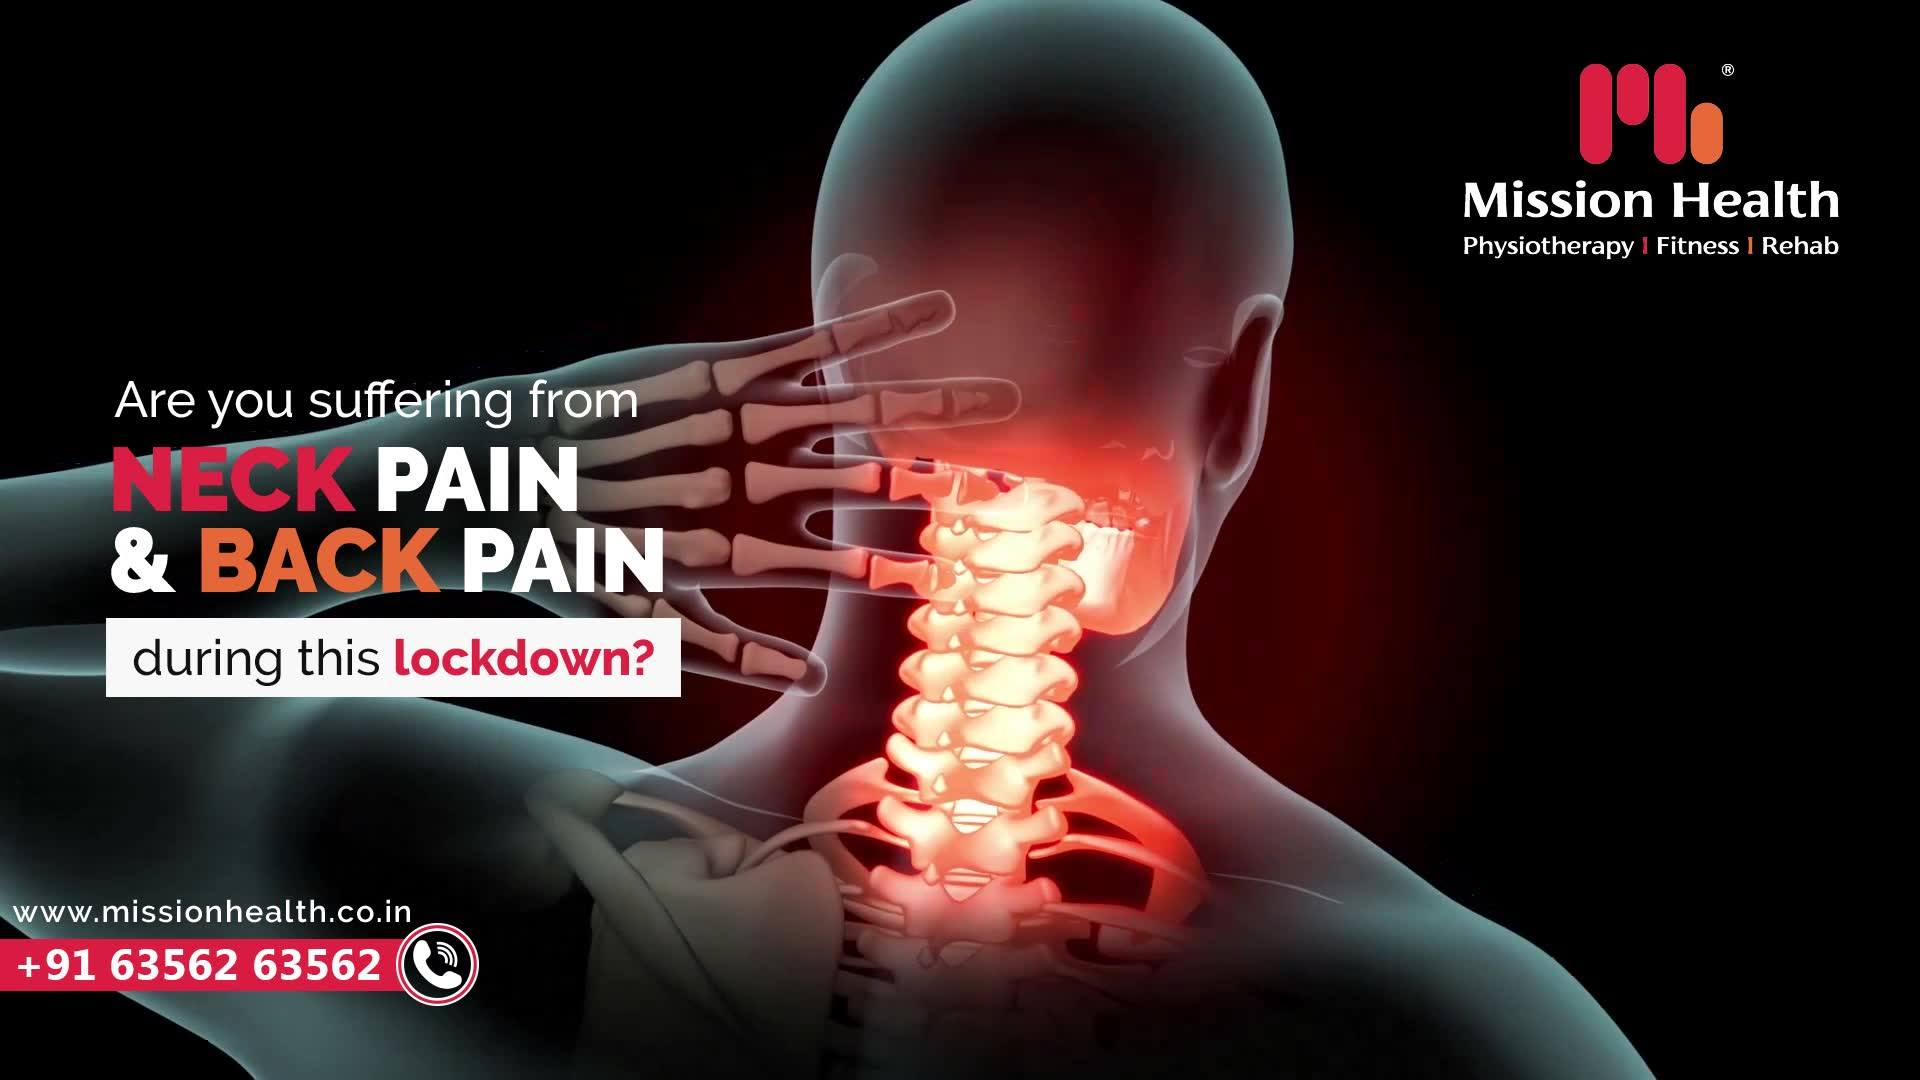 Are you suffering from Neck Pain & Back Pain during this lockdown?   The most possible reasons could be over usage of gadgets and incorrect postures while working from home.   Share your problem & symptoms with us and schedule your appointment. Ignoring a Minor pain today can result in a Major Spine Problems tomorrow.       Call +916356263562 www.missionhealth.co.in  #IndiaFightsCorona #Coronavirus #stayathome #lockdownopd #neurorehab #strokerehab #stroke #strokesurvior #openingsoon #physiotherapy #physiotherapist #neckpain #jointpain #backpain #spineproblems #slippeddisc #stiffness #stress #panic #workfromhome #MissionHealth #MissionHealthIndia #MovementIsLife